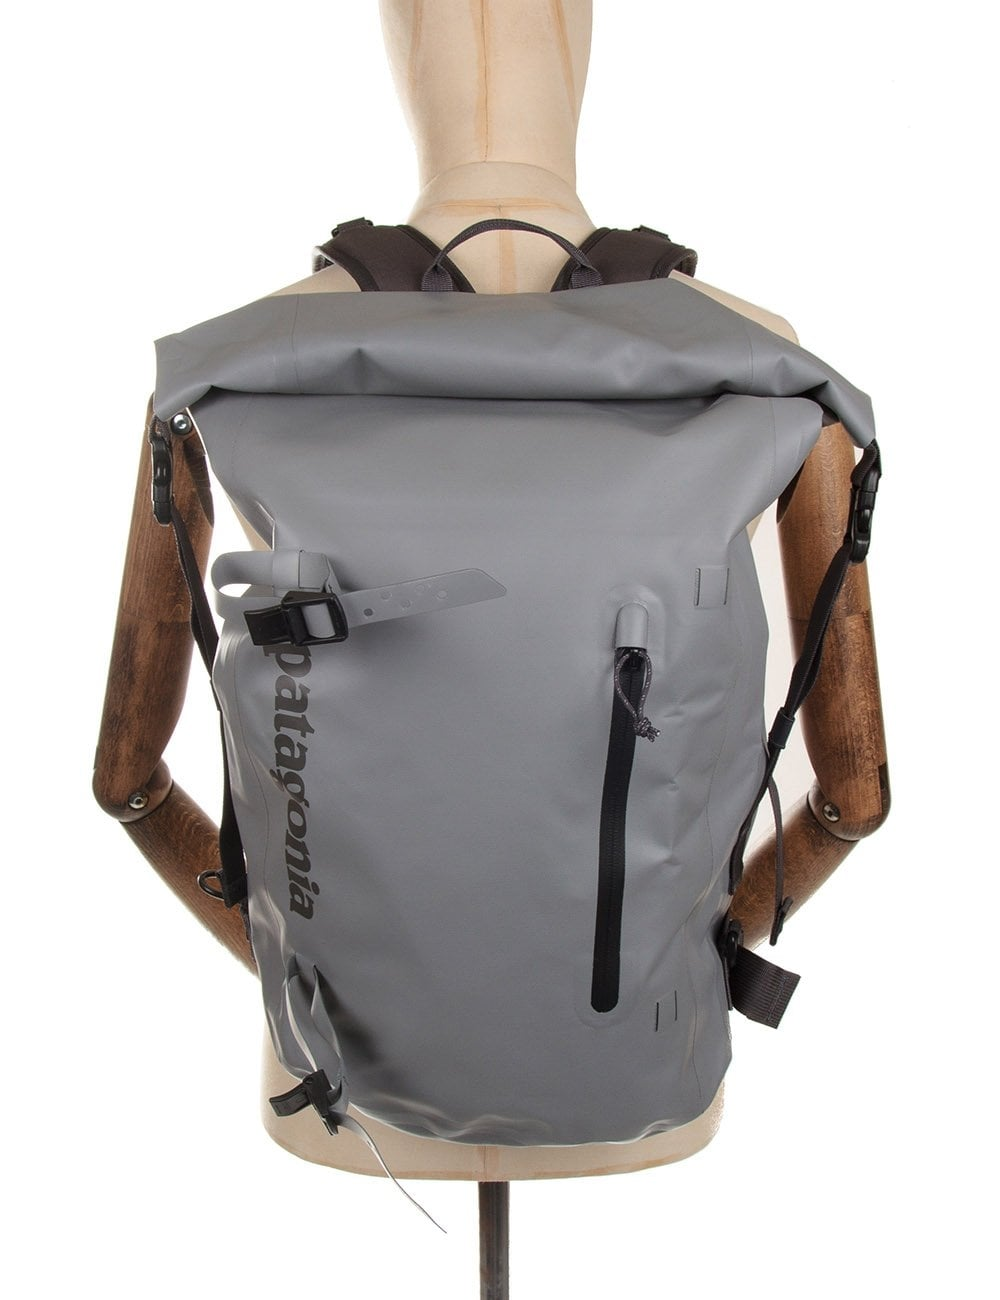 85062c5e5f Patagonia Stormfront Backpack - Feather Grey - Accessories from Fat ...